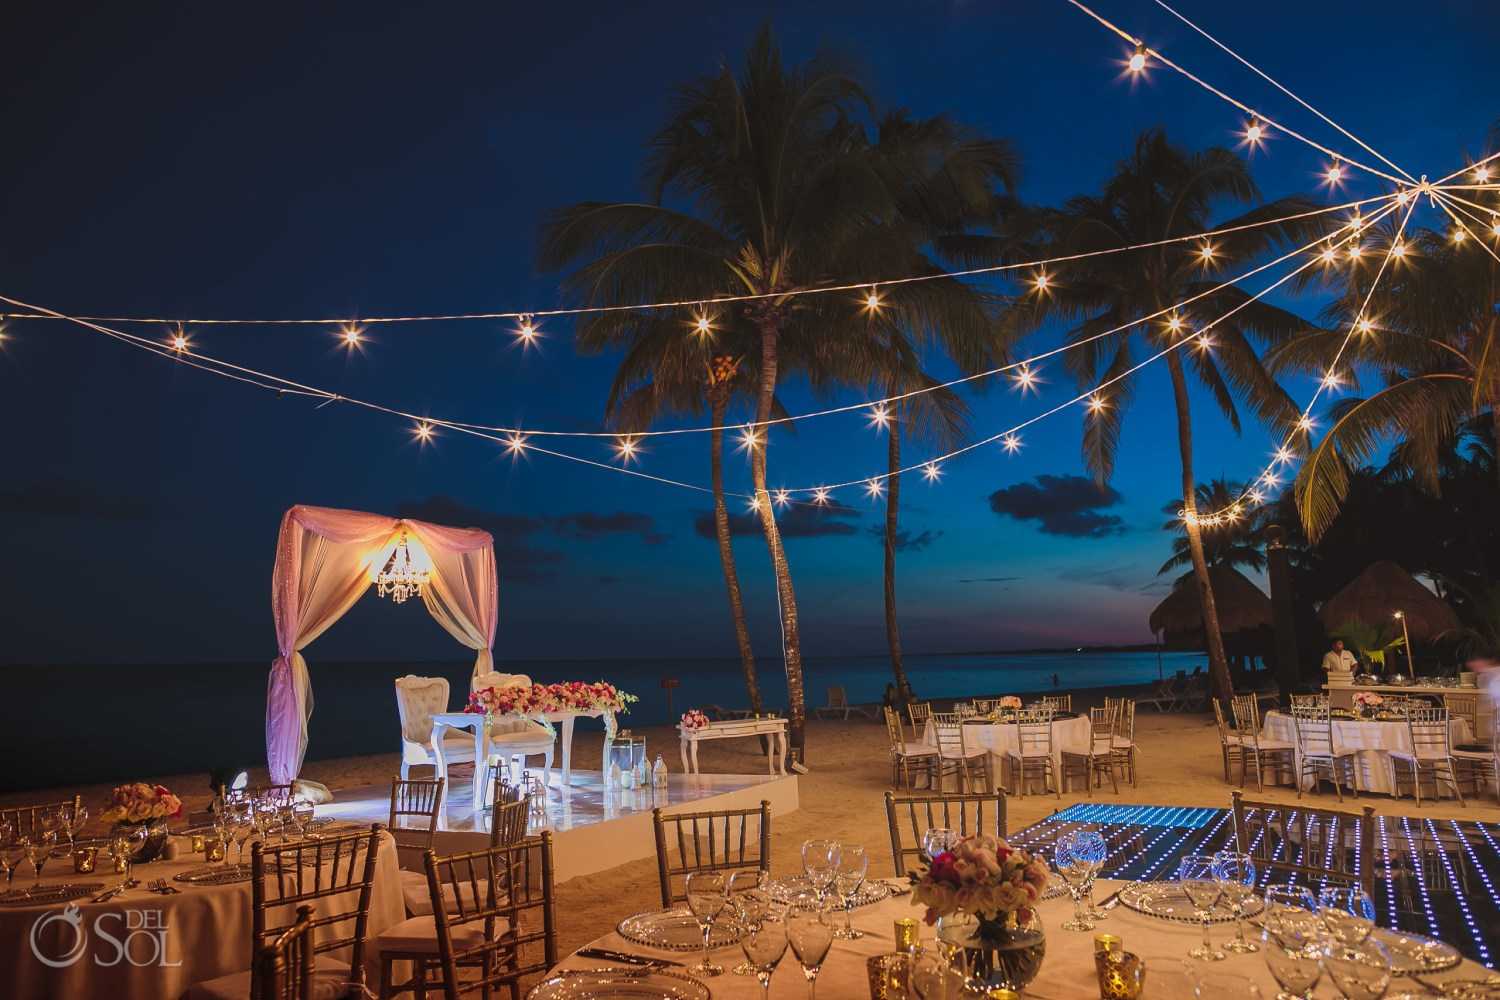 Dreams Tulum central beach Wedding reception set up